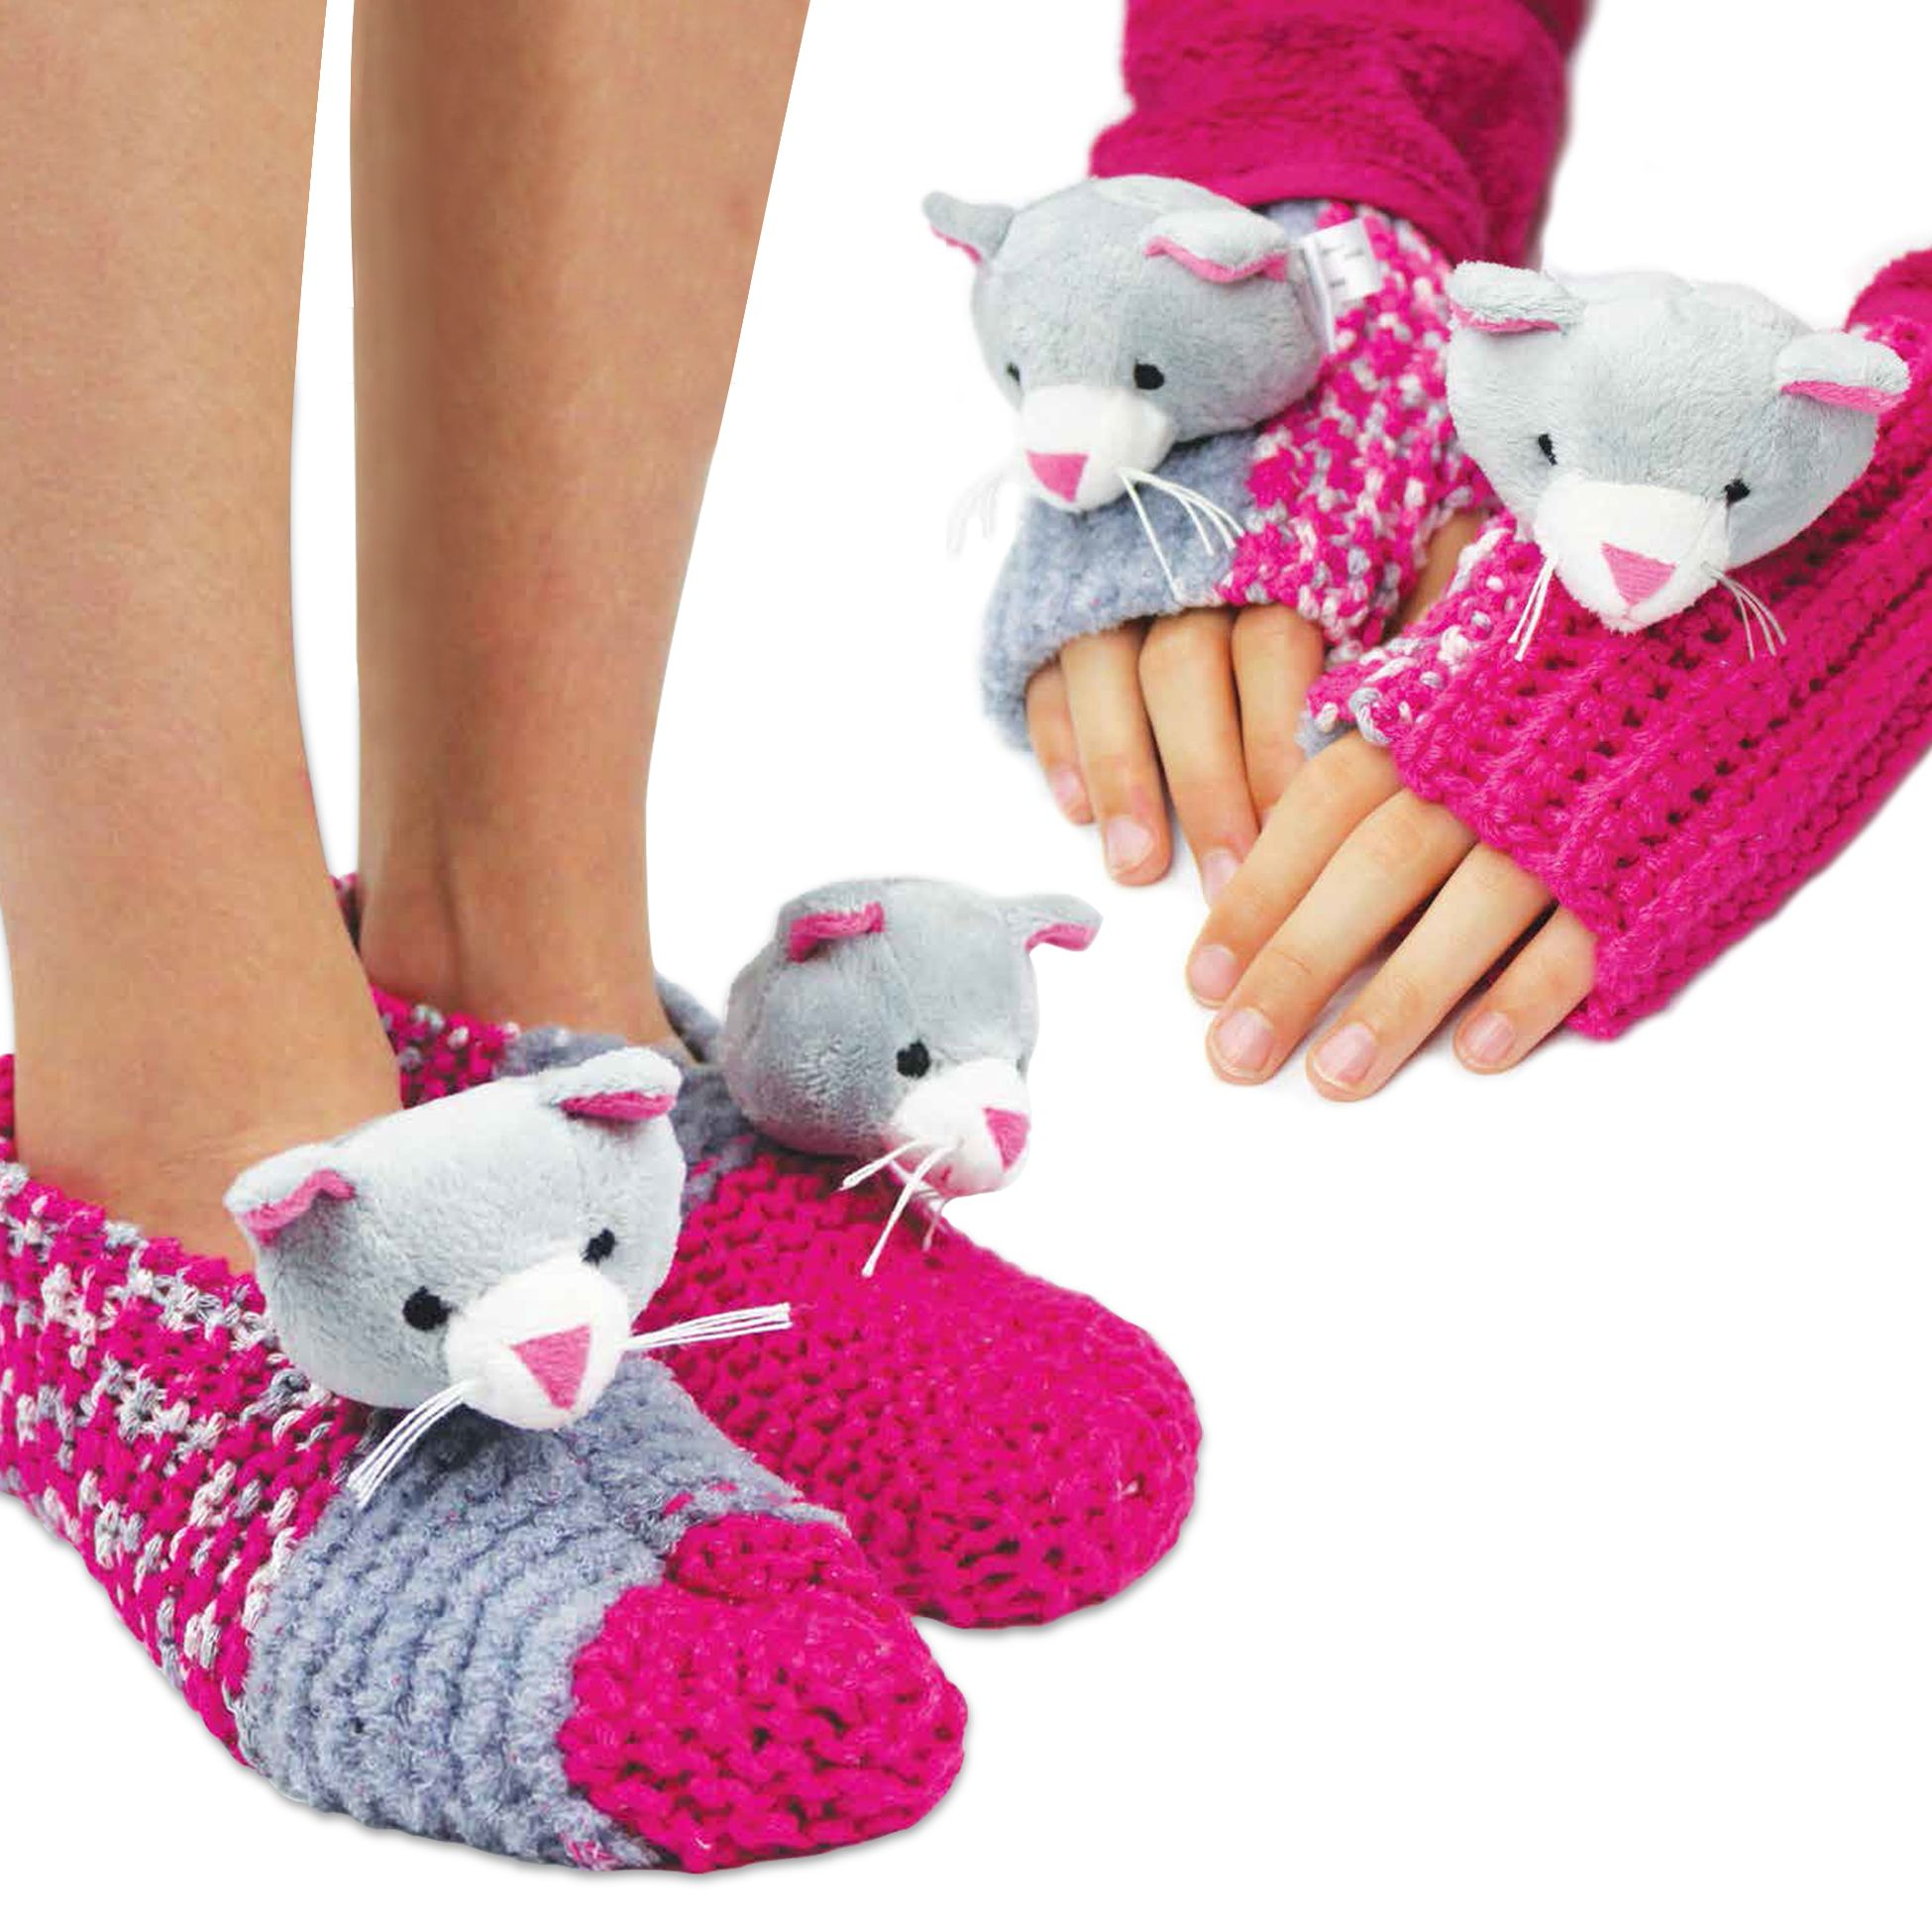 Top This! Gloves & Slippers Bilingue! Slippers